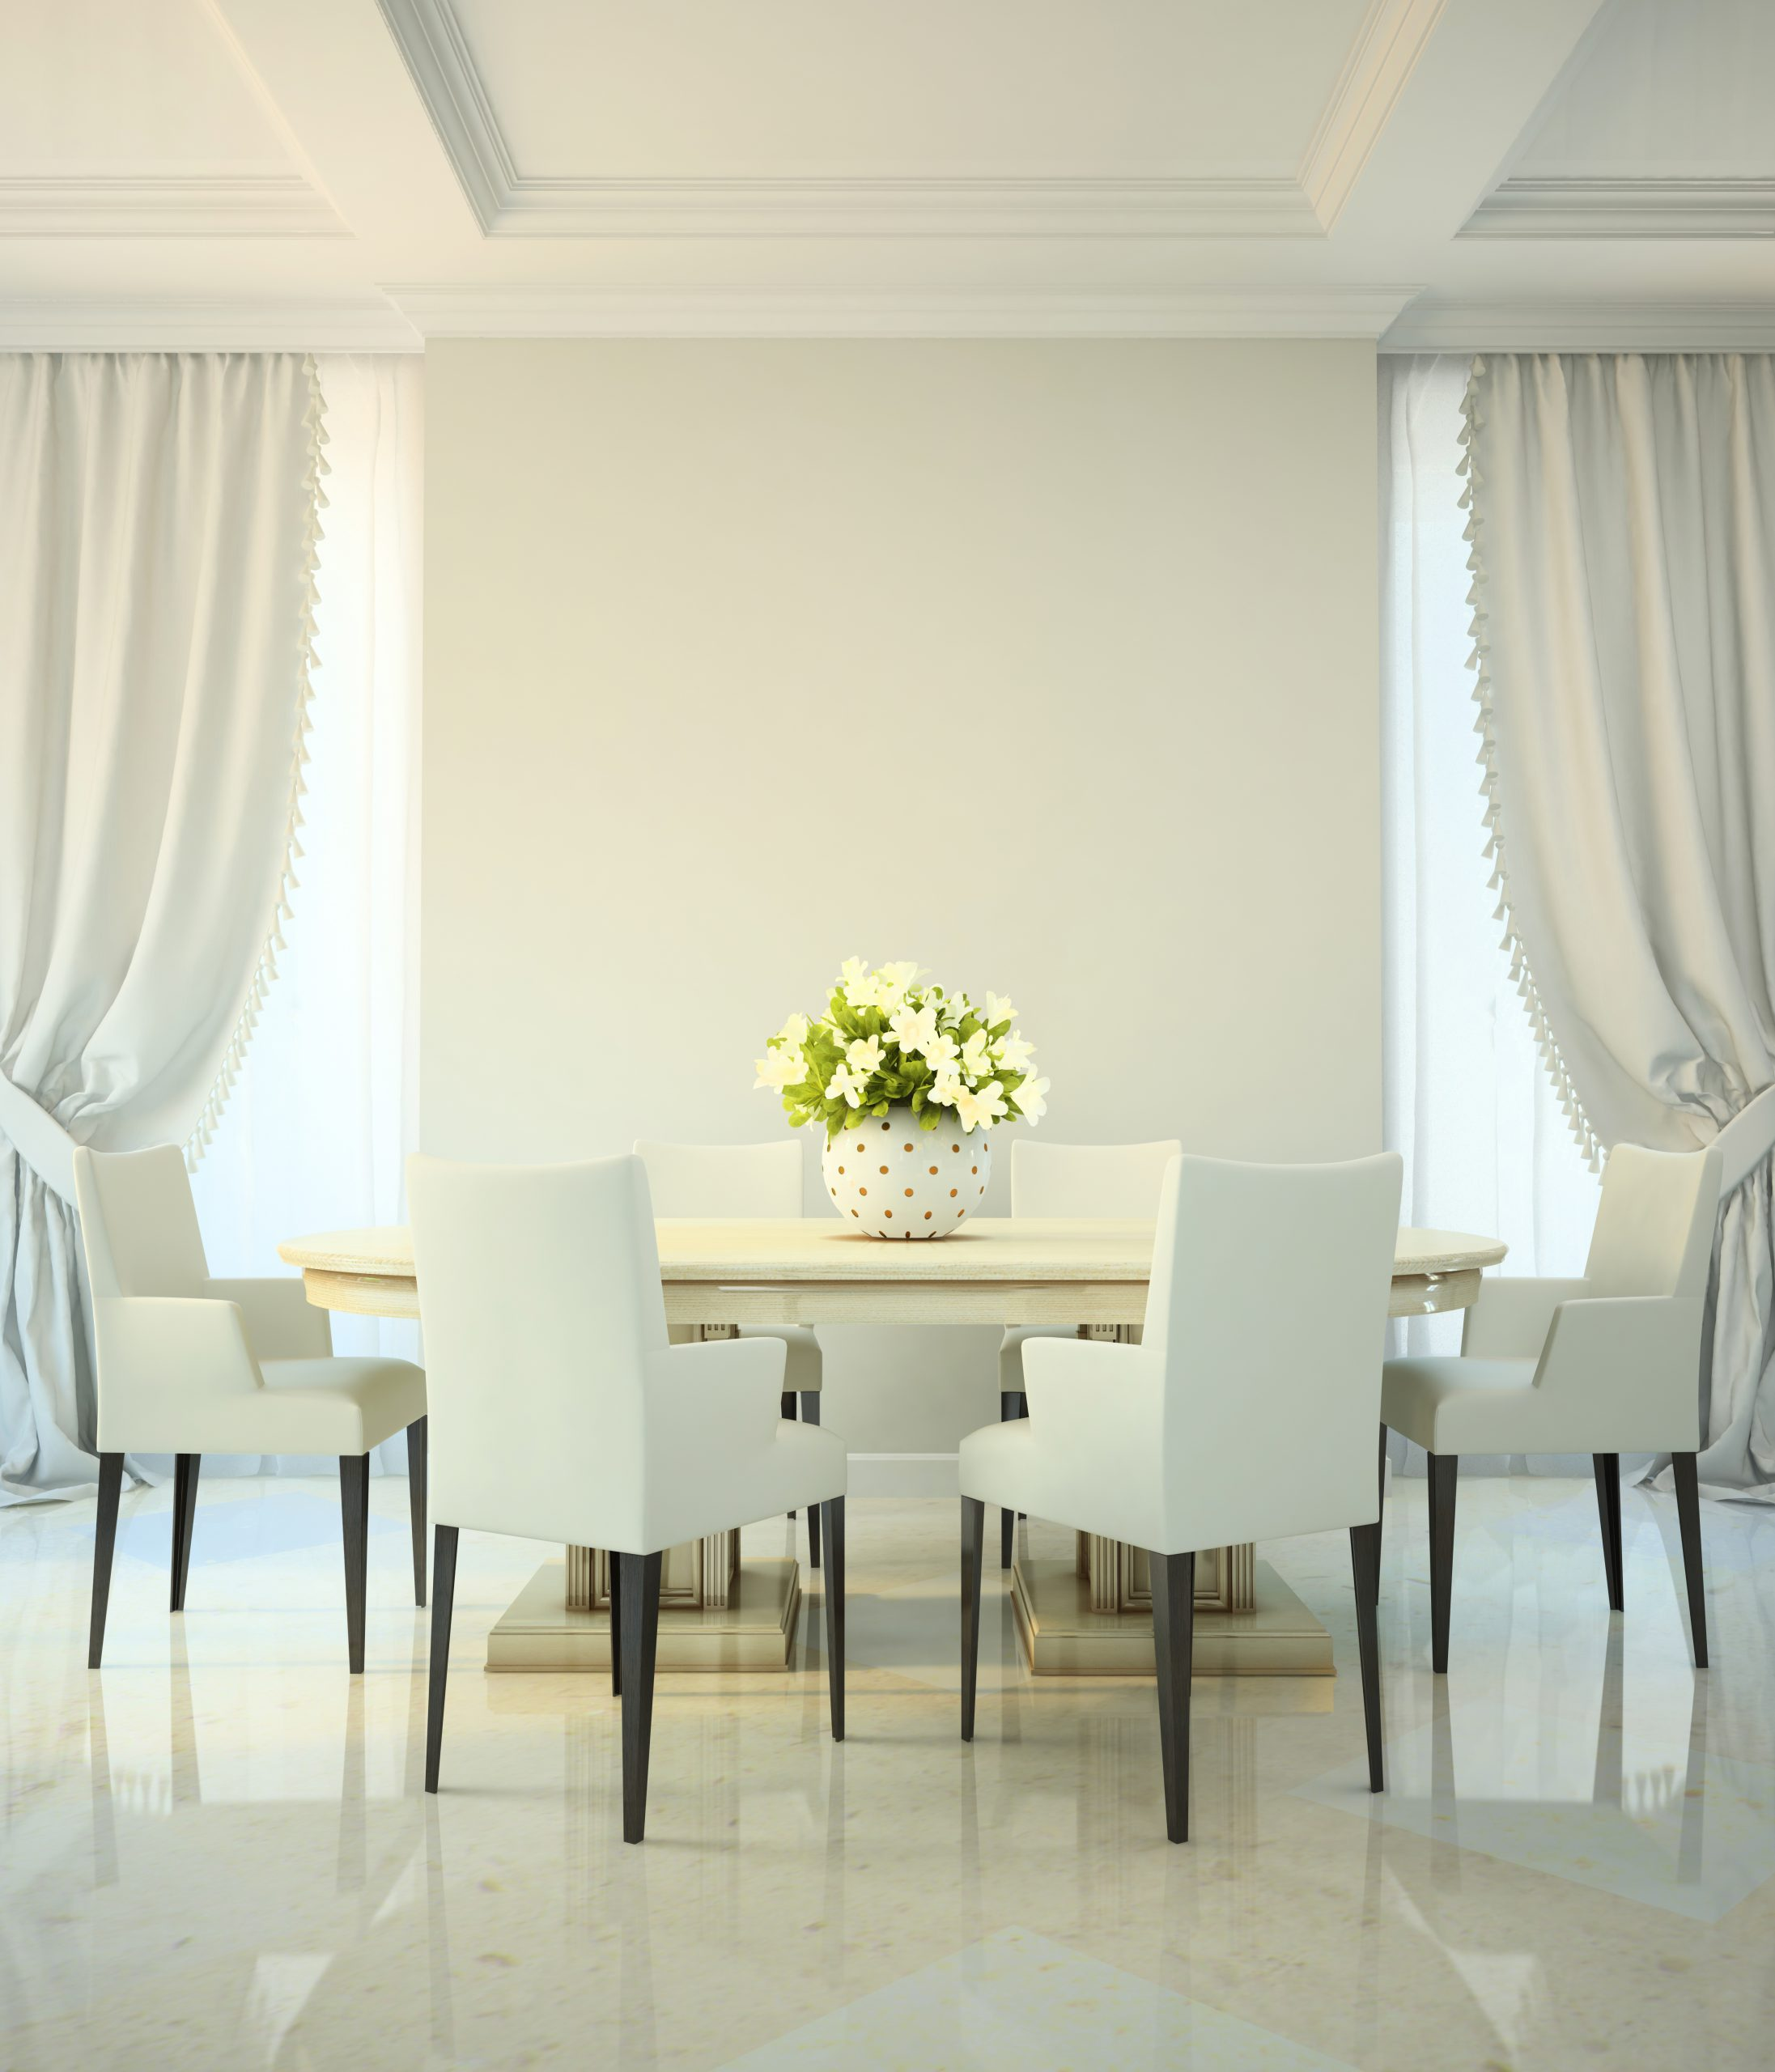 Six white chairs and a table